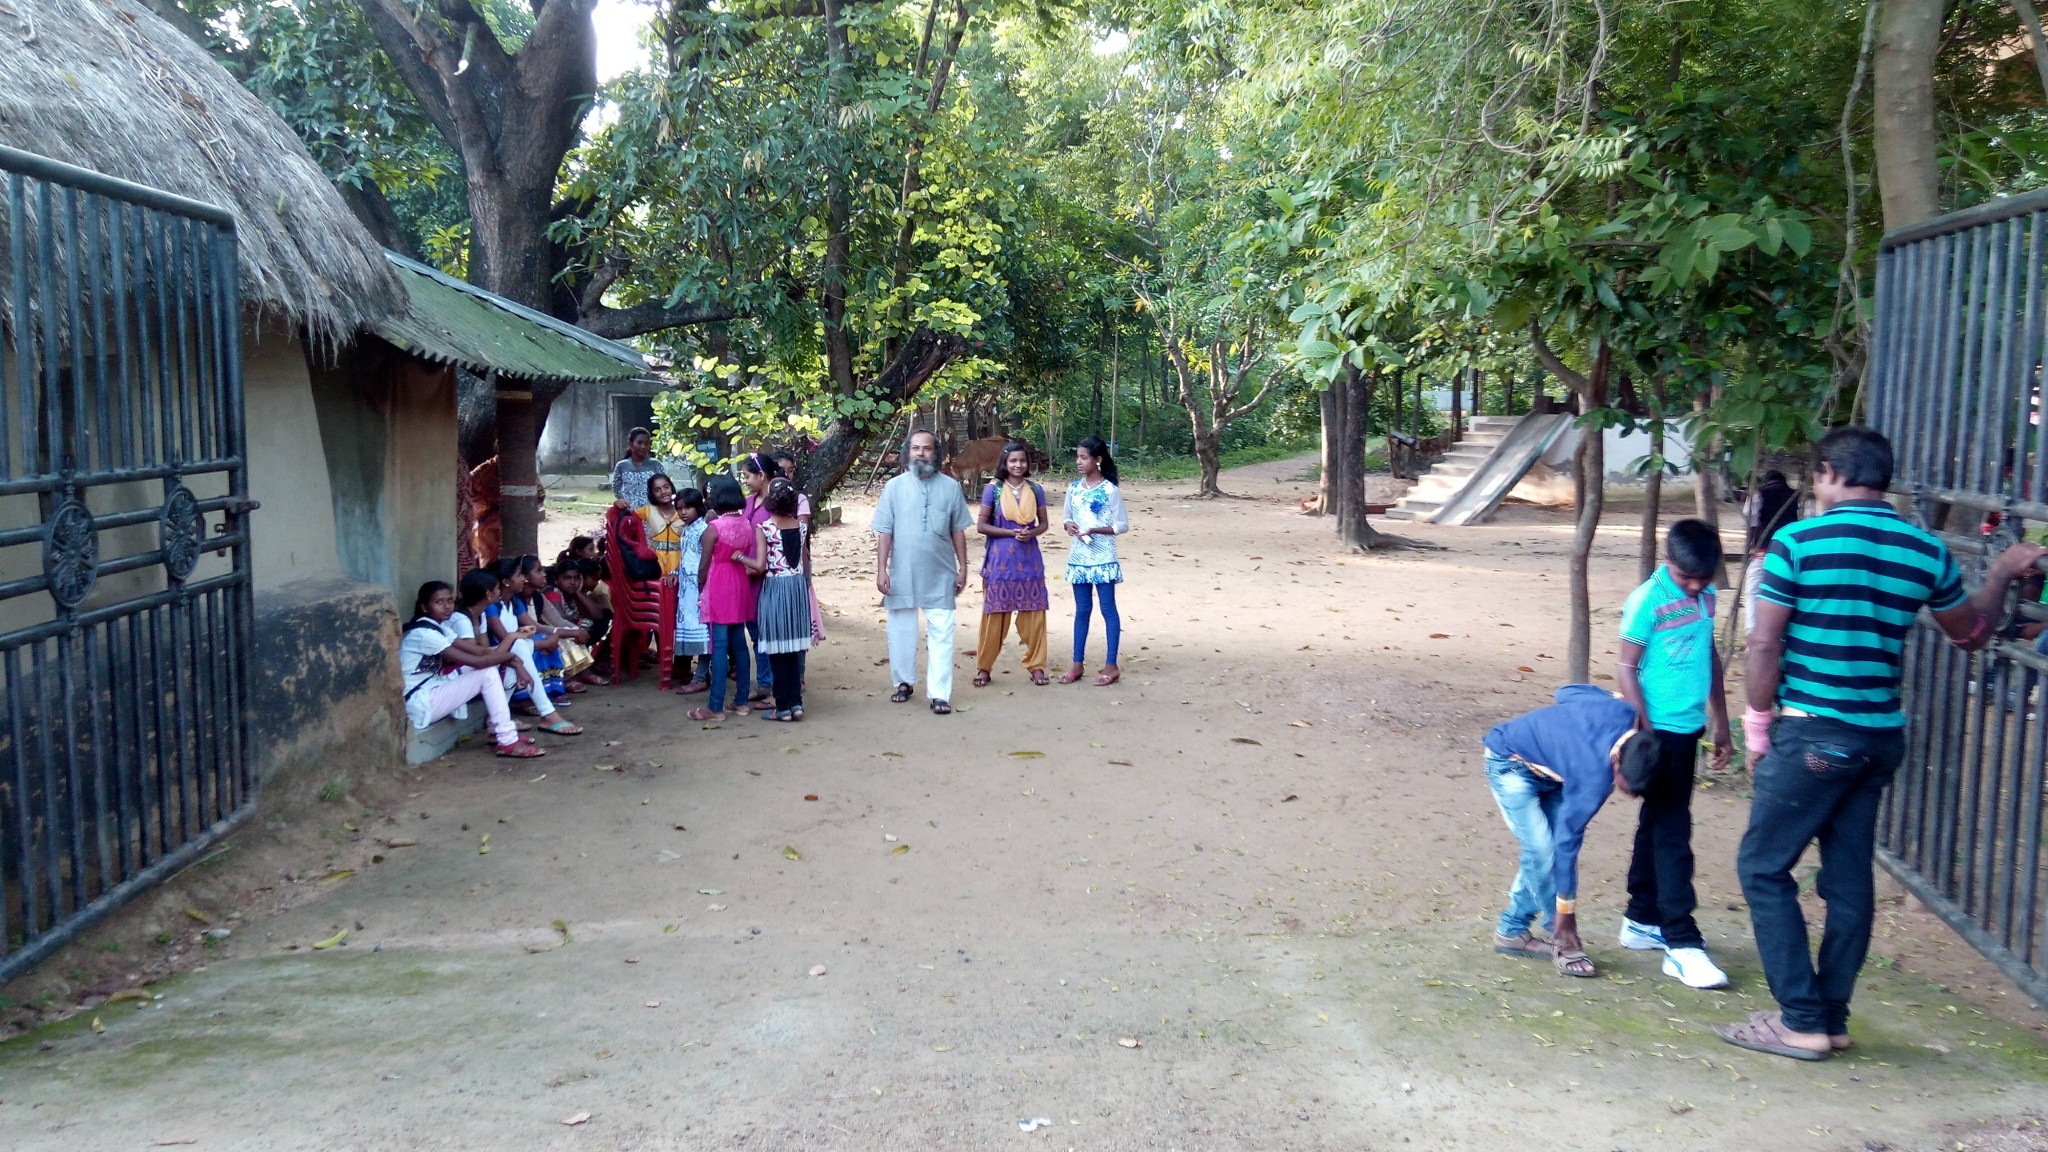 A peek inside the campus of 'Kalyan Sangha', on the morning of the Excursion